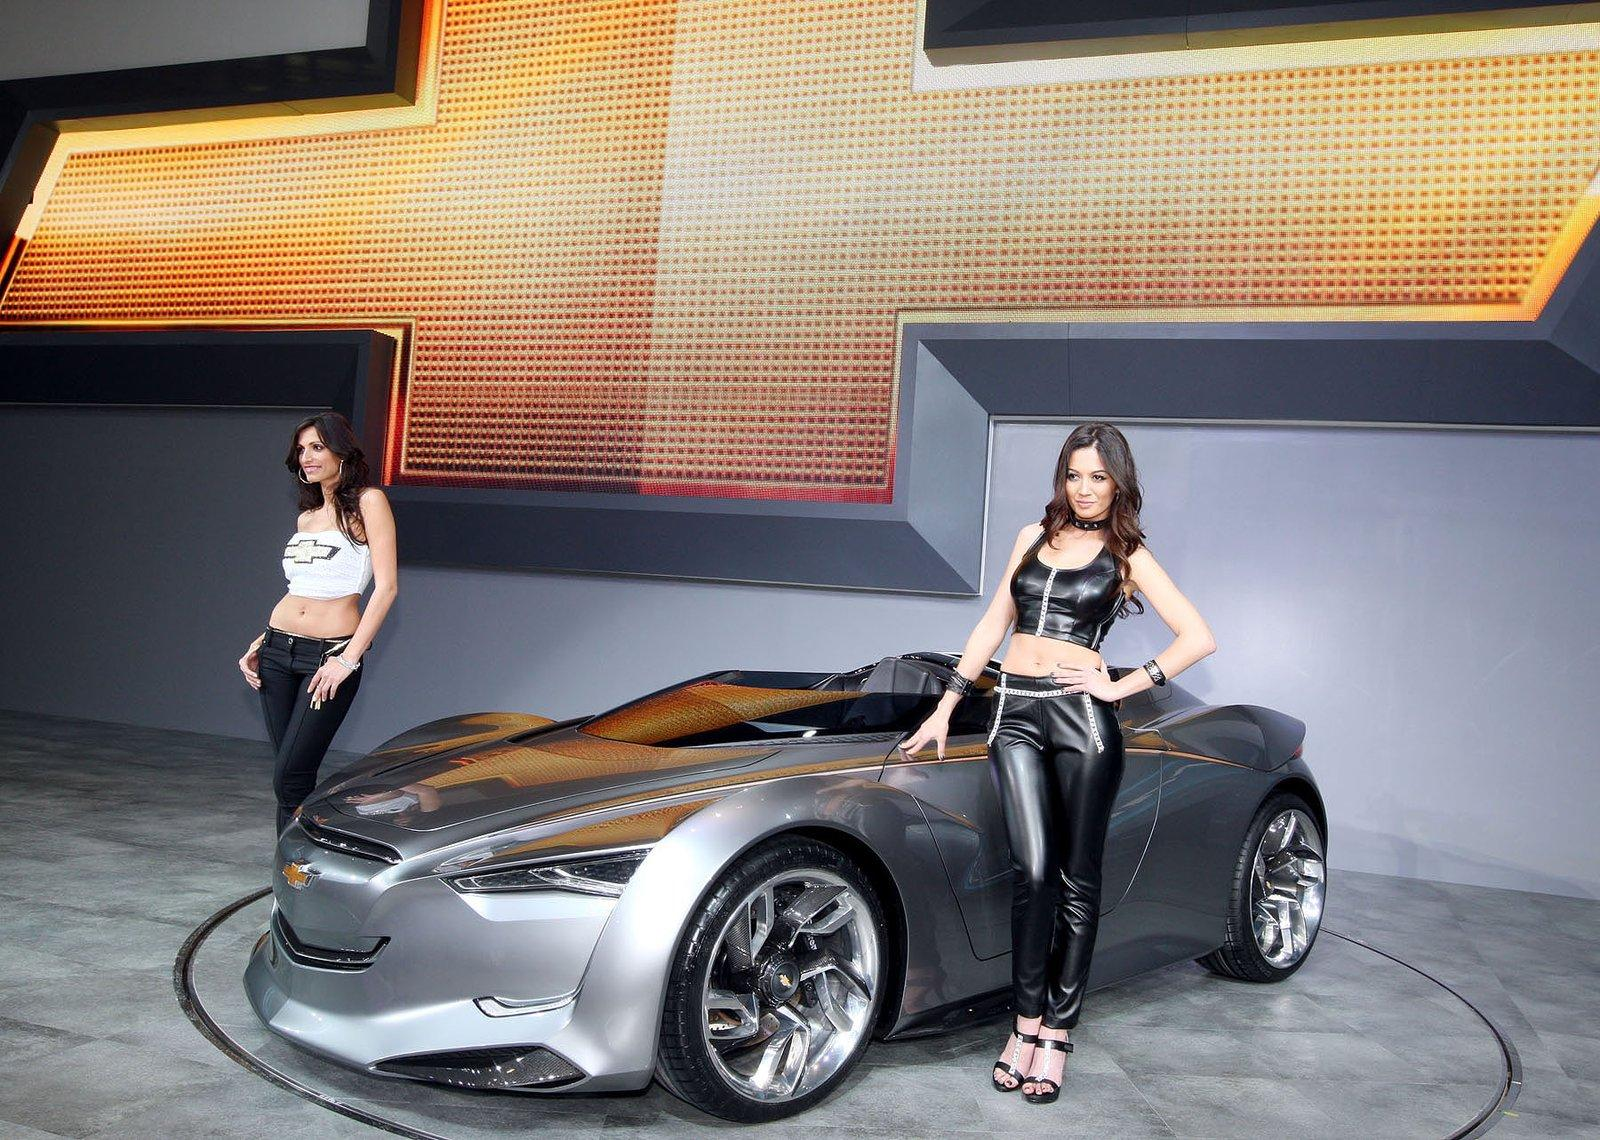 chevy concept cars images galleries with a bite. Black Bedroom Furniture Sets. Home Design Ideas